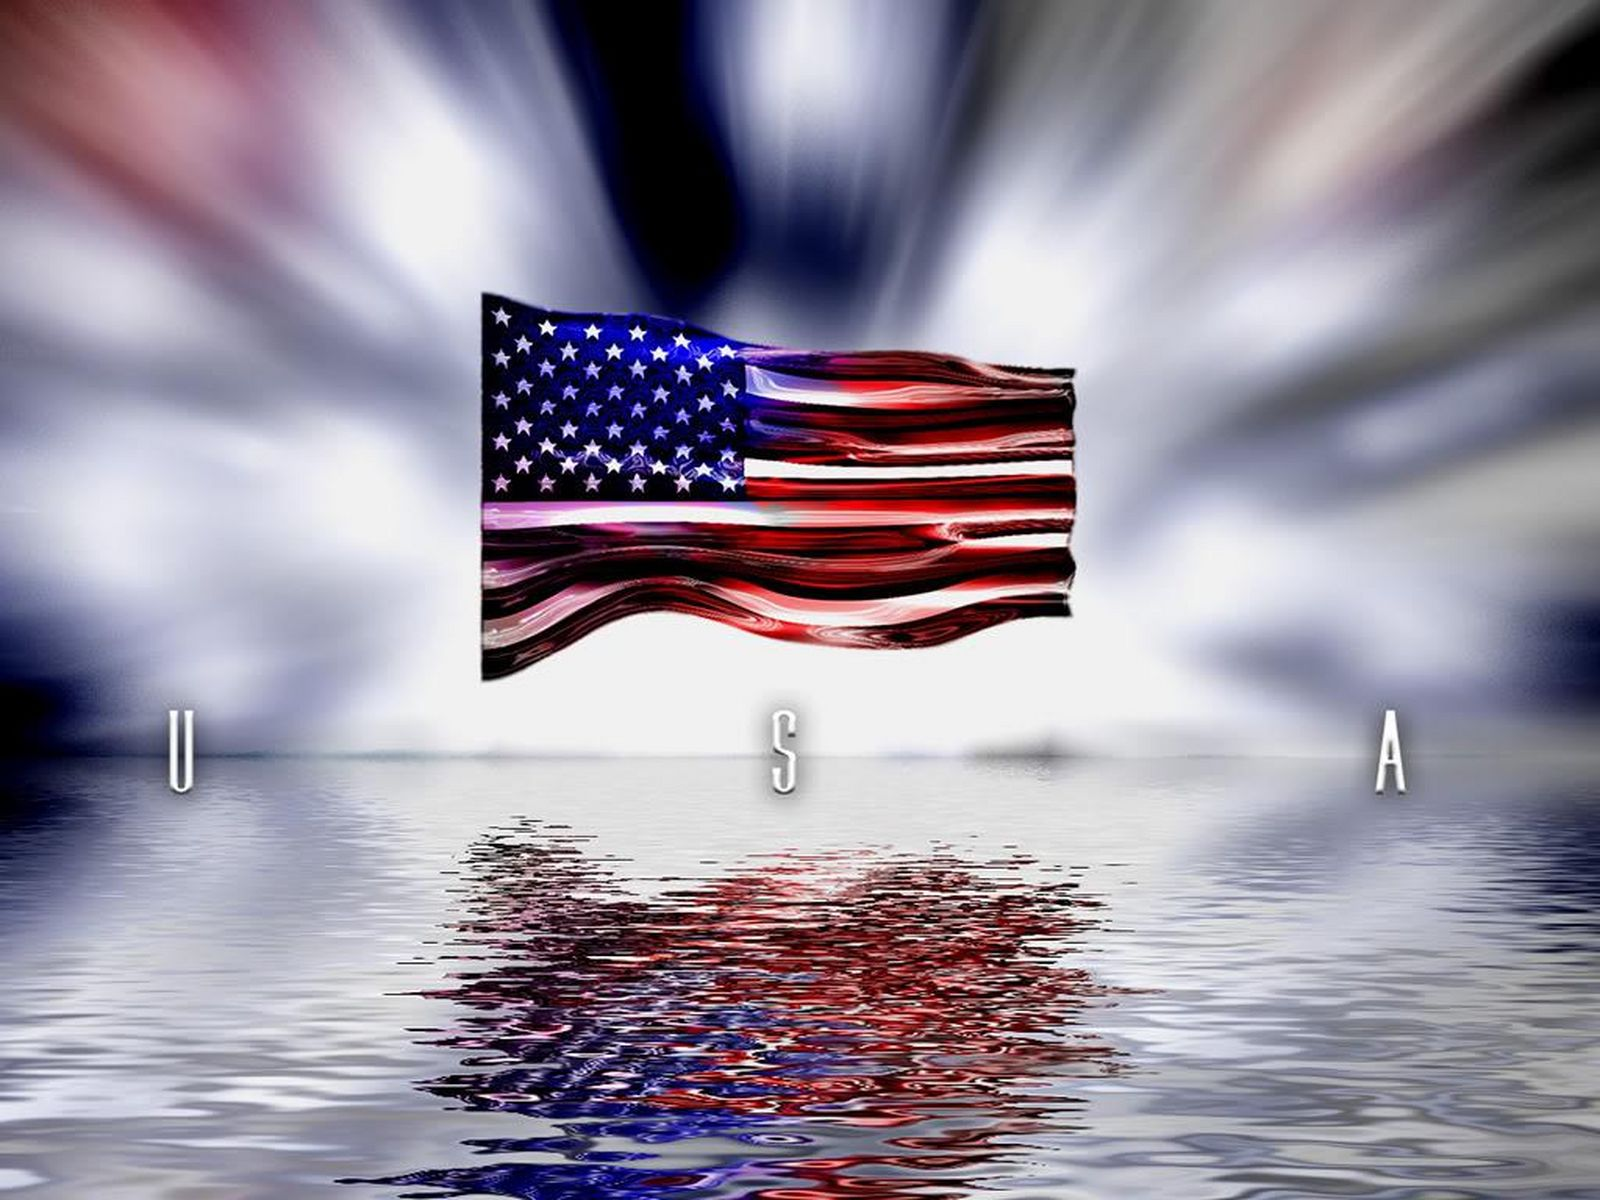 american flag wallpaper wallpaper 1600x1200